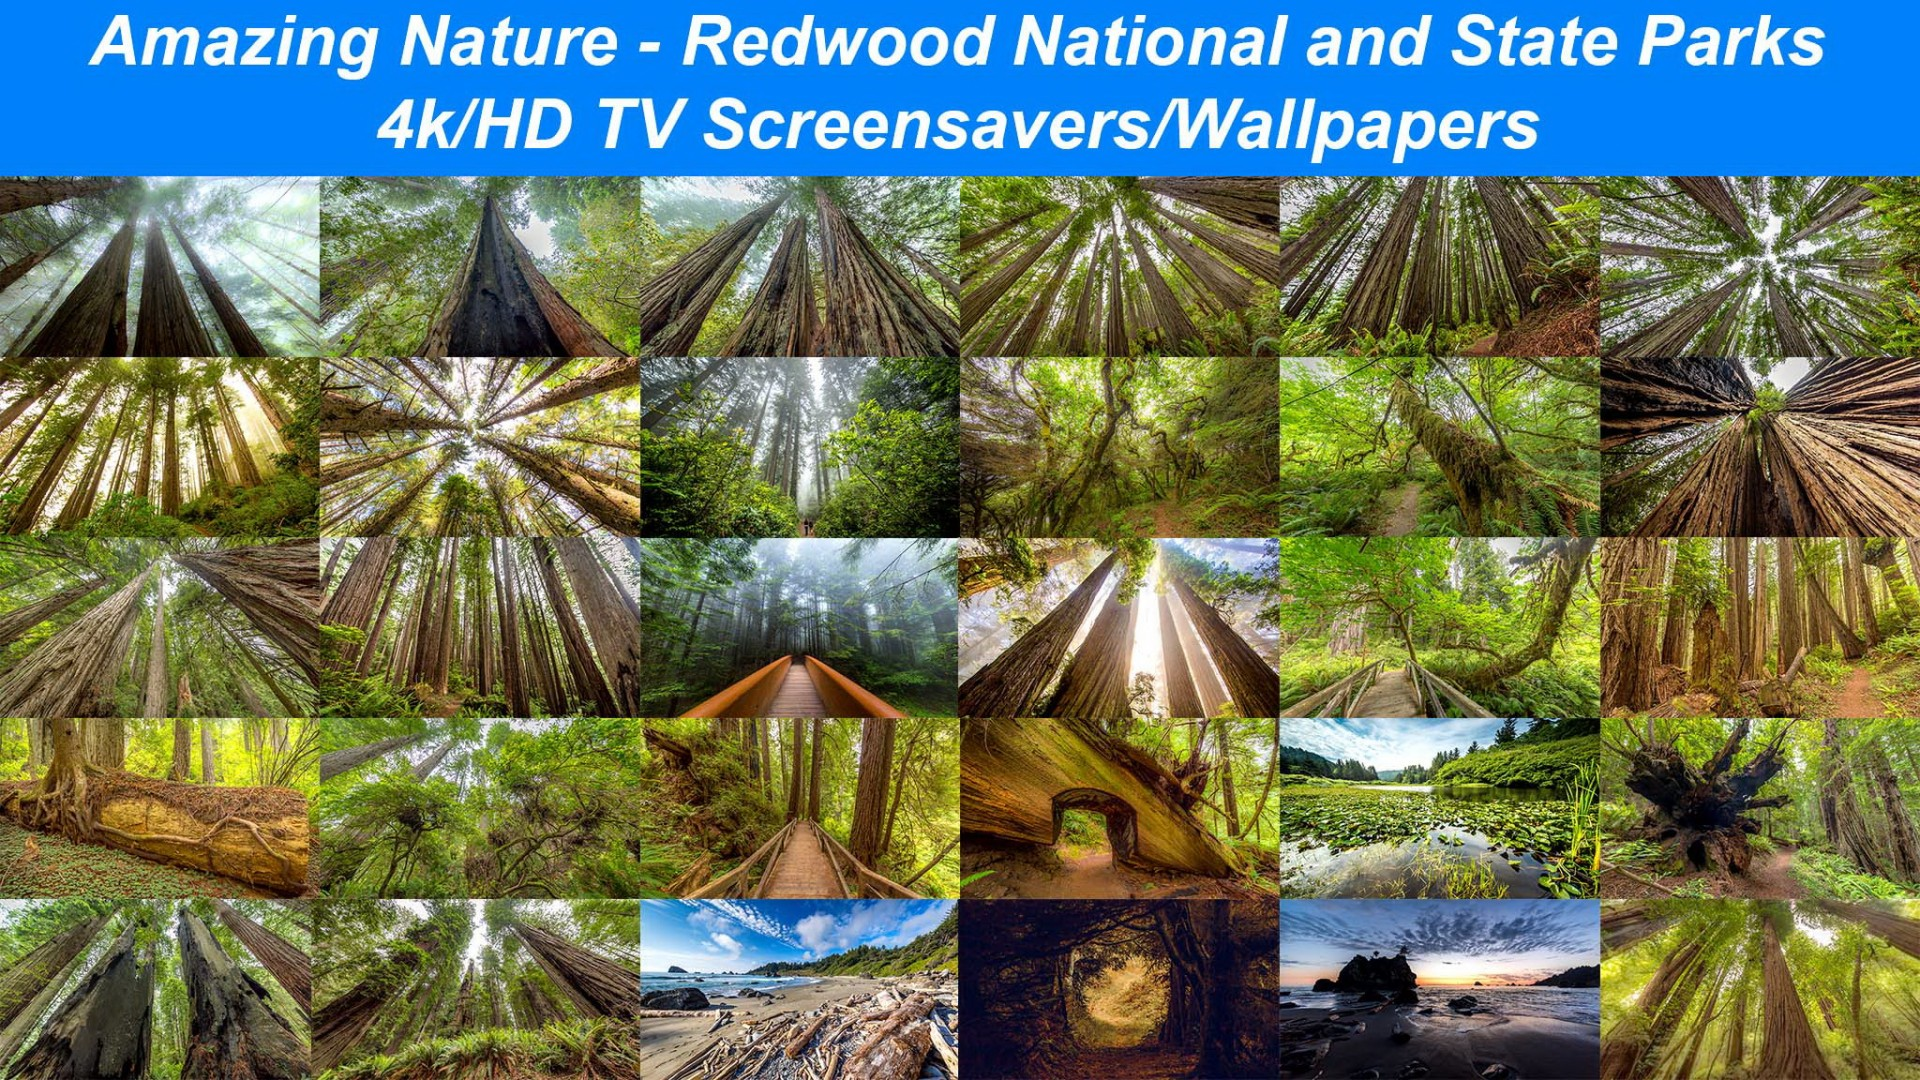 Amazing Nature Redwood National and State Parks 1 4KHD 1920x1080